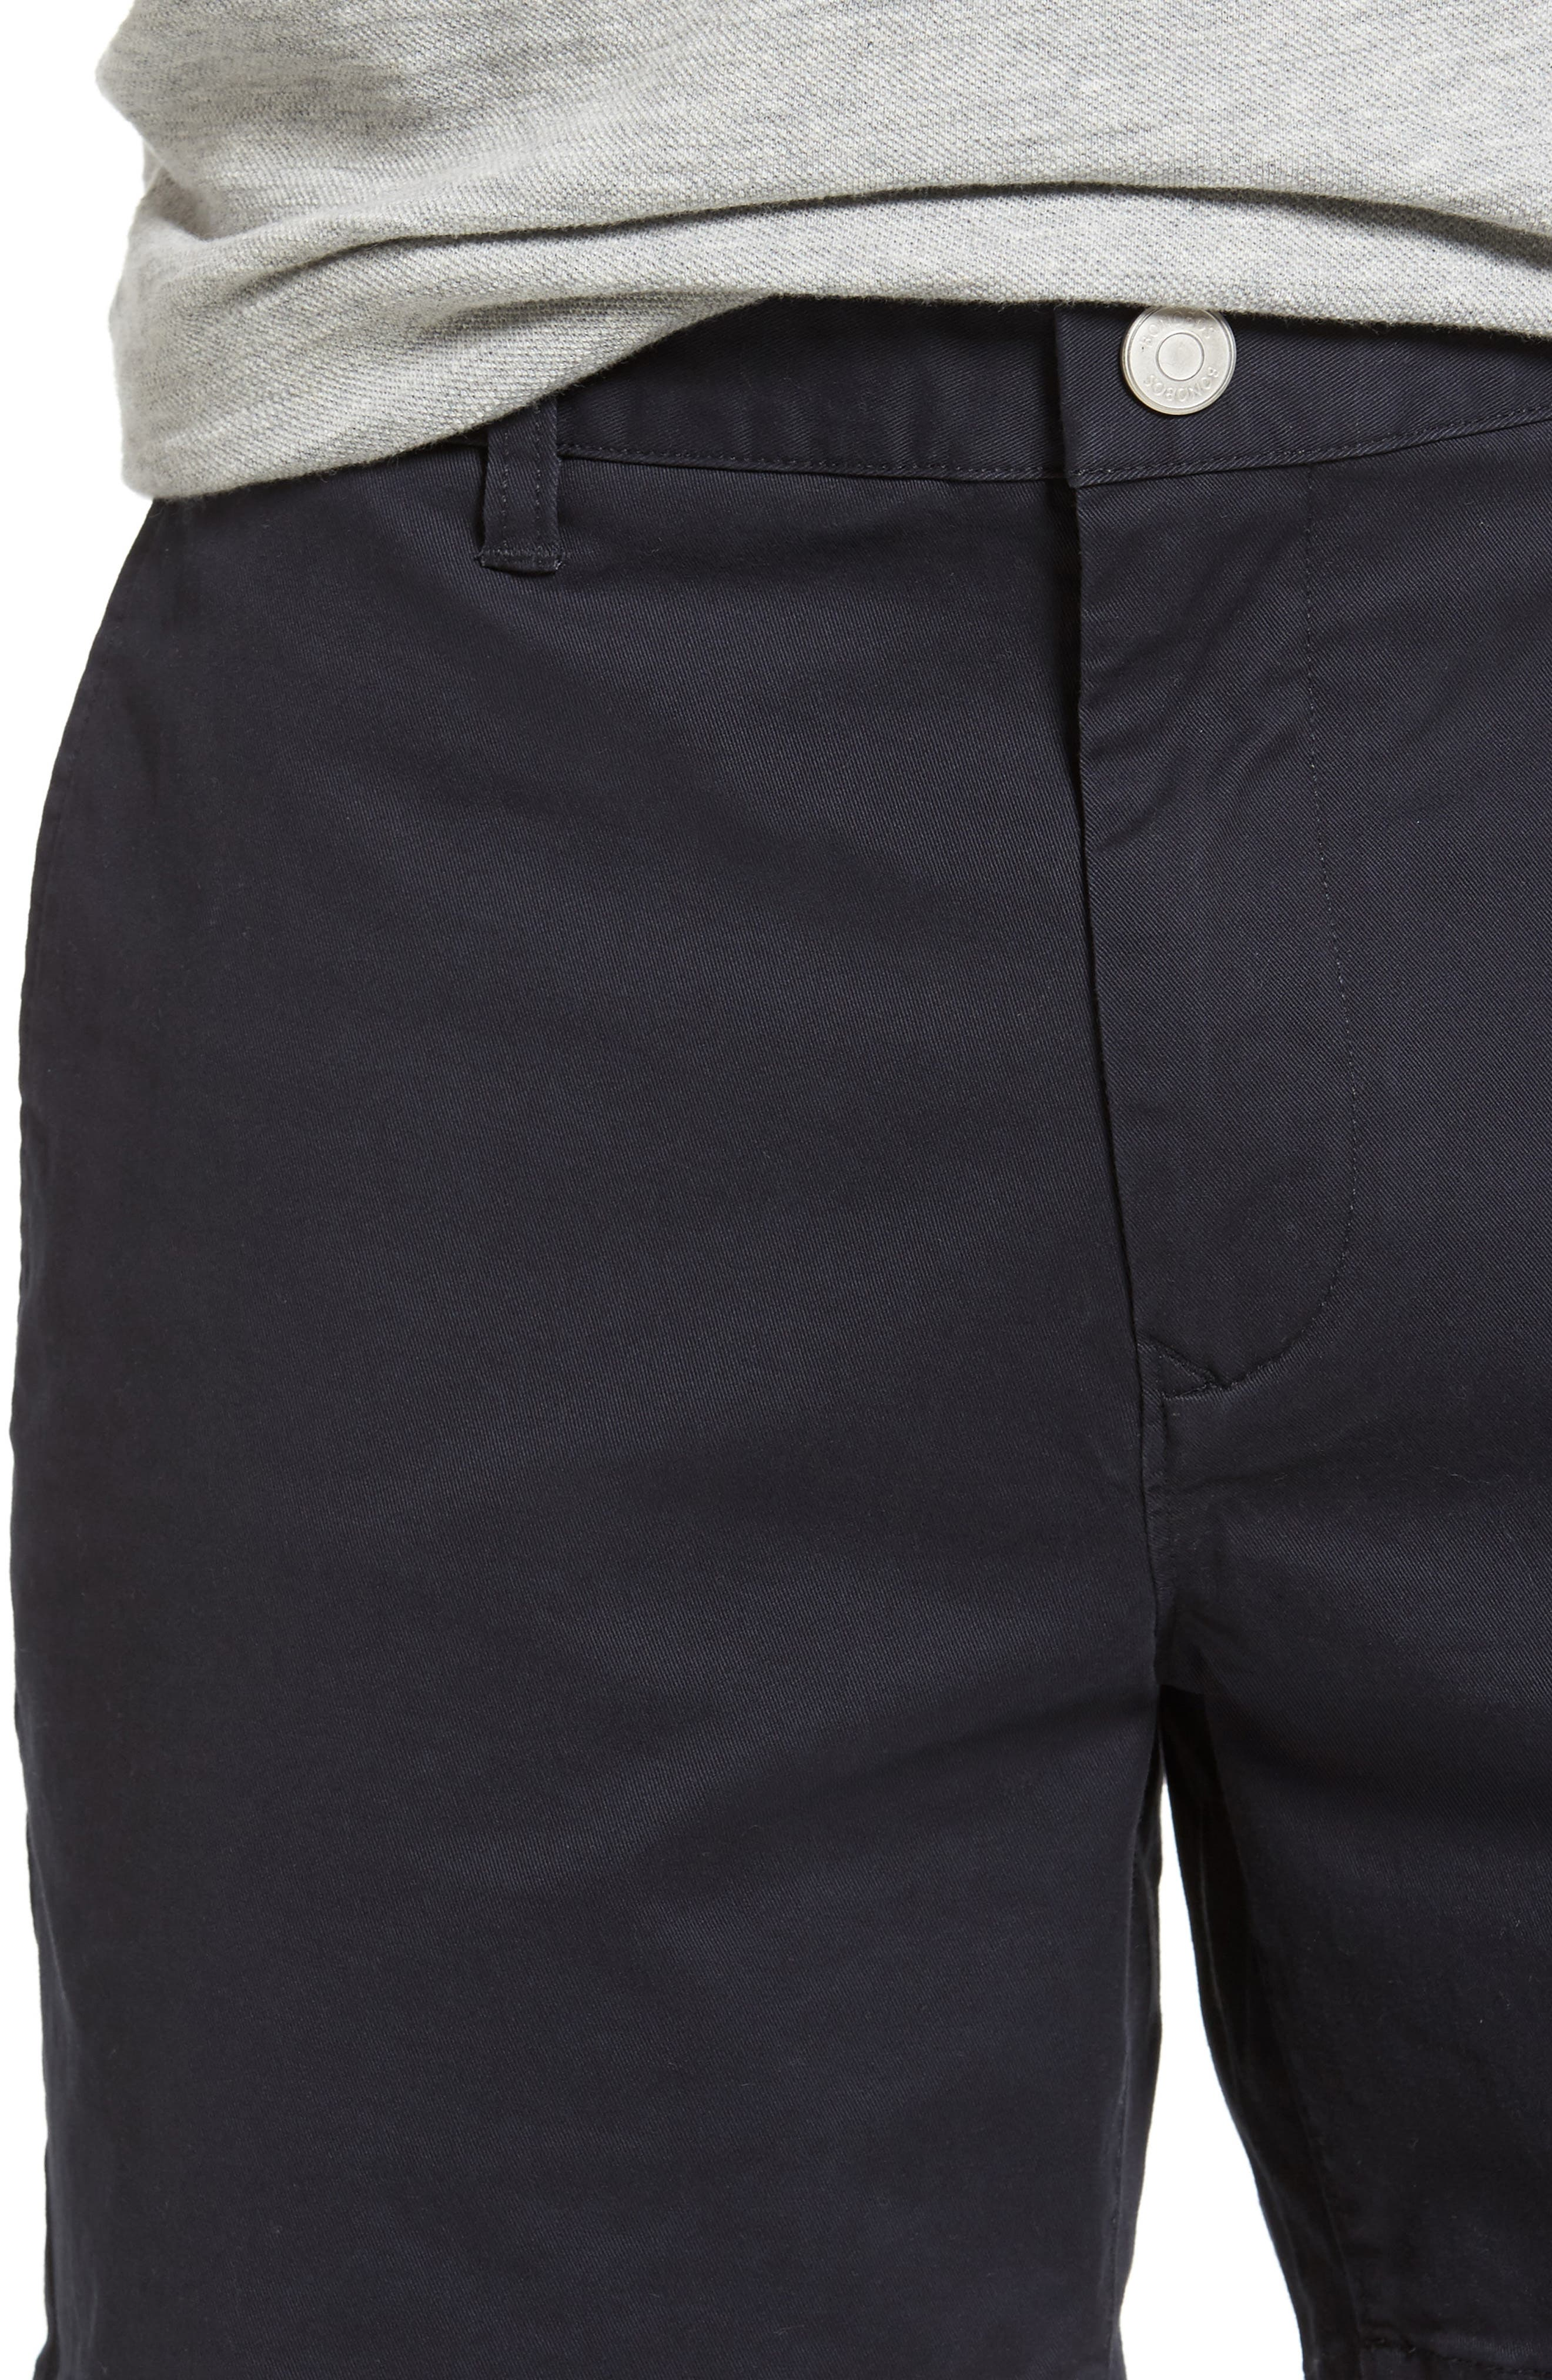 Stretch Washed Chino 5-Inch Shorts,                             Alternate thumbnail 110, color,